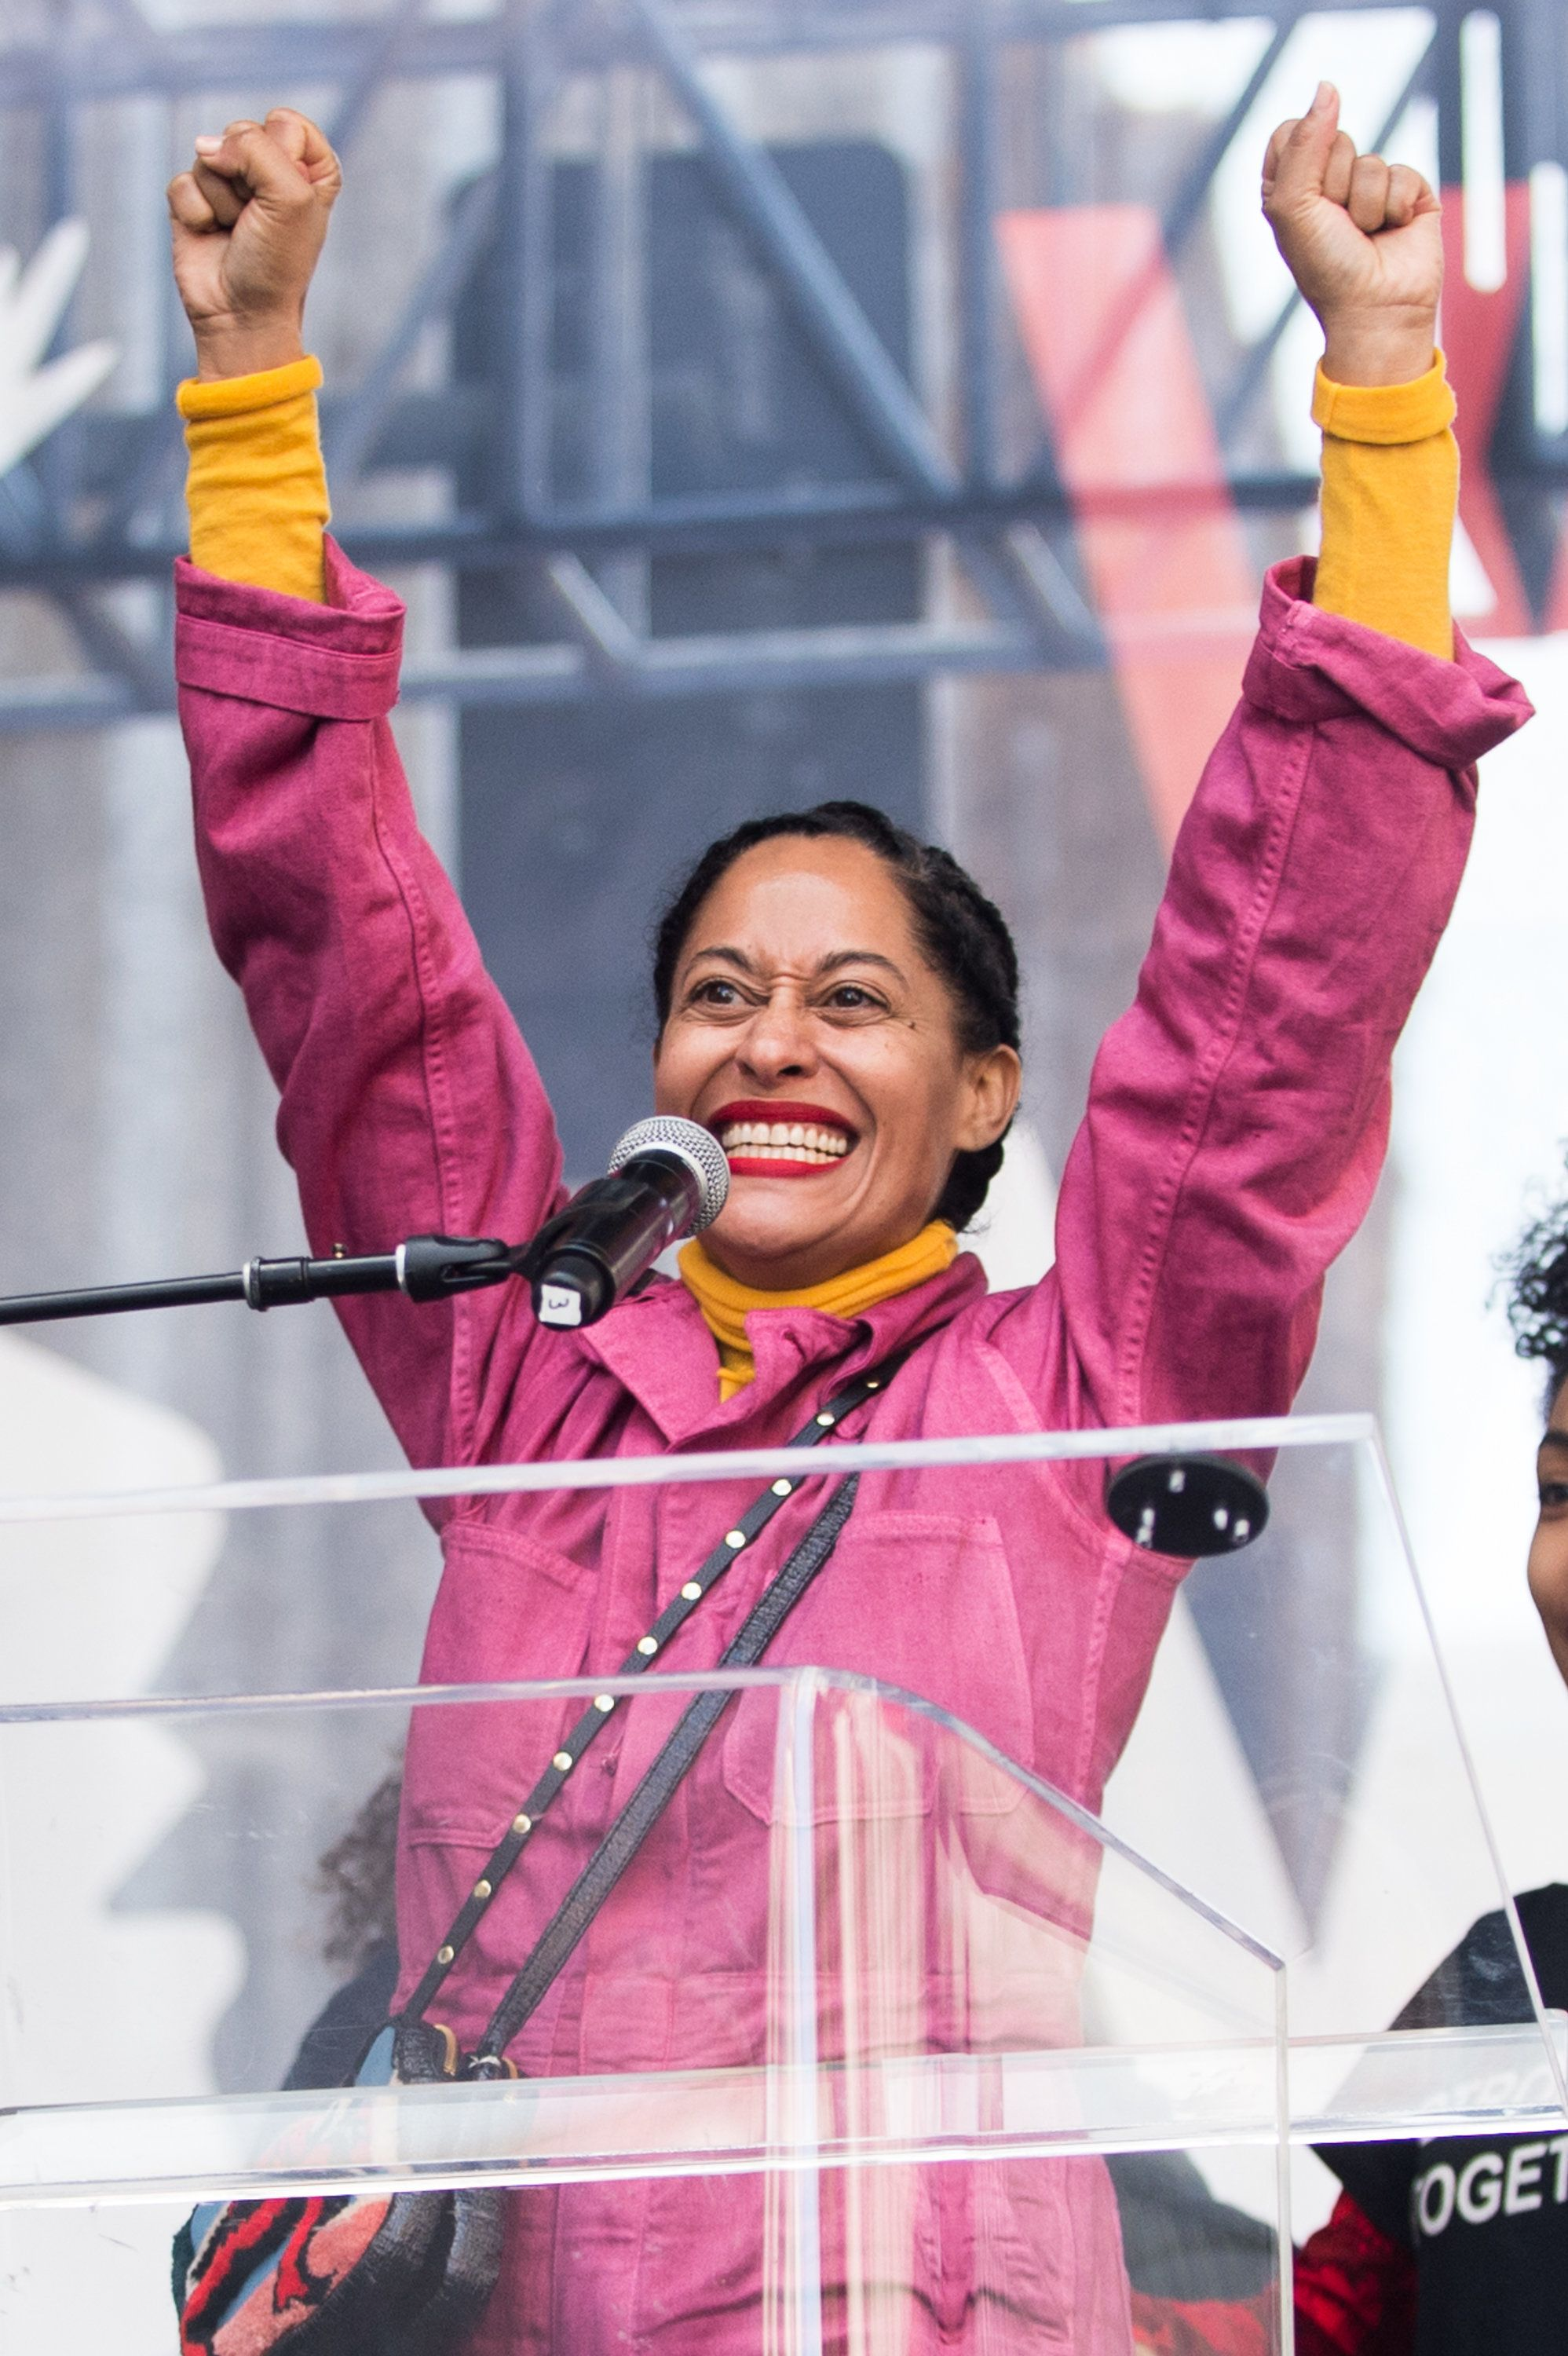 LOS ANGELES, CA - JANUARY 21:  Actress Tracee Ellis Ross speaks onstage at the women's march in Los Angeles on January 21, 2017 in Los Angeles, California.  (Photo by Emma McIntyre/Getty Images)